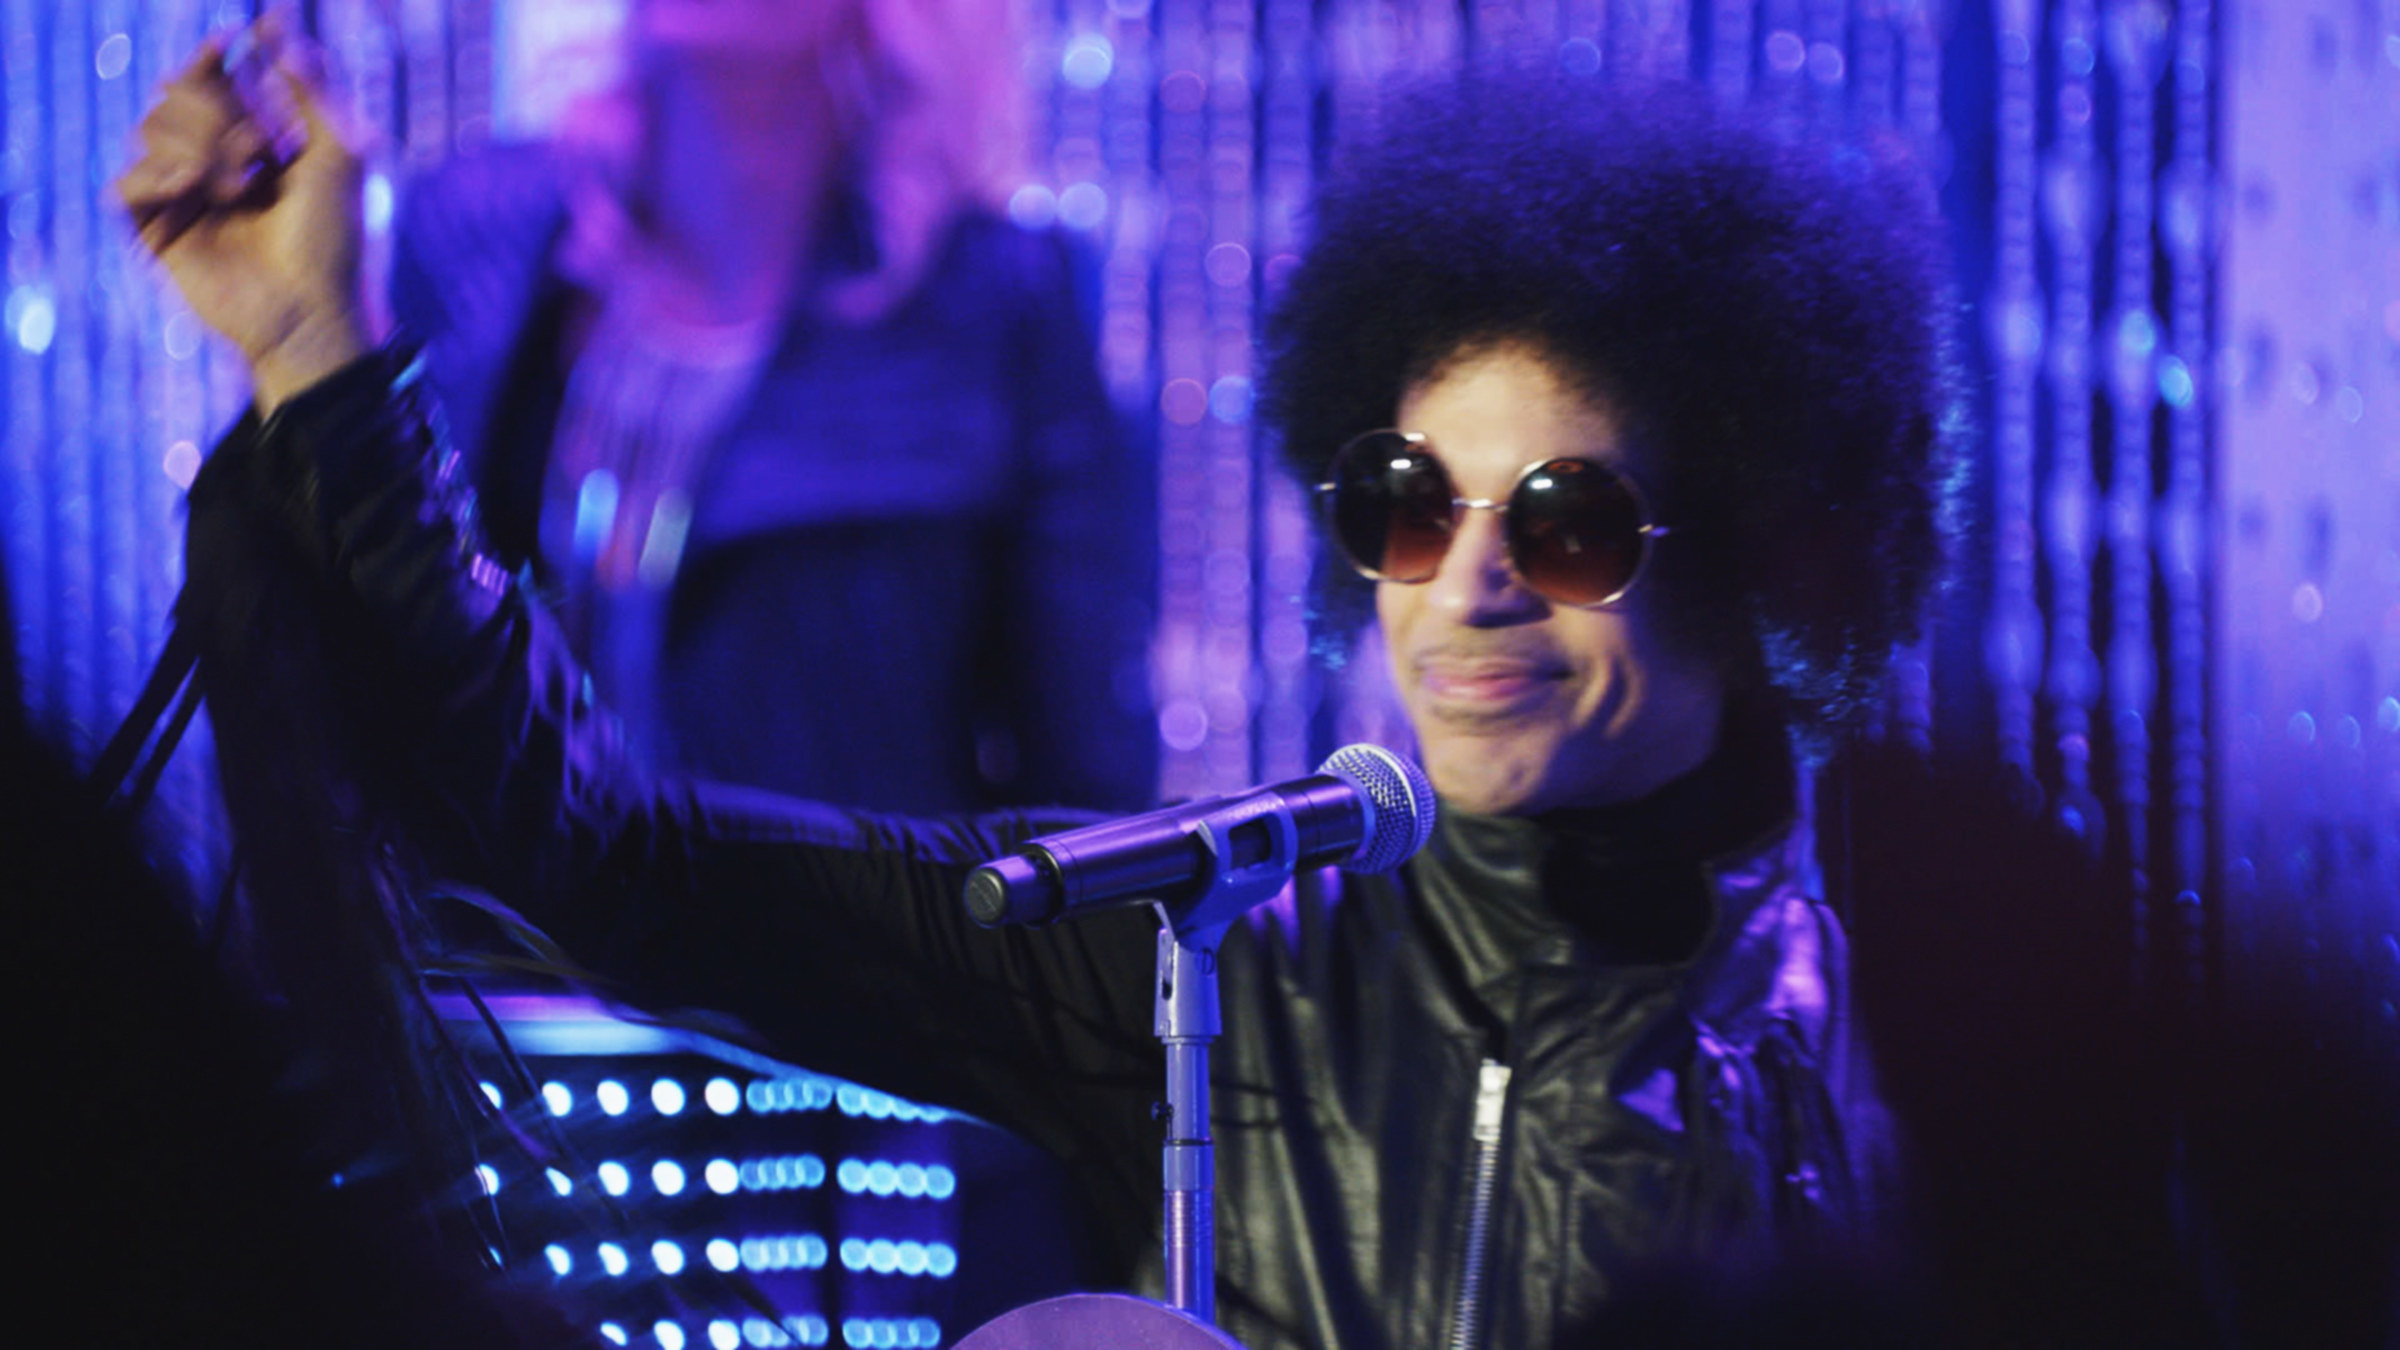 Prince in the episode onstage